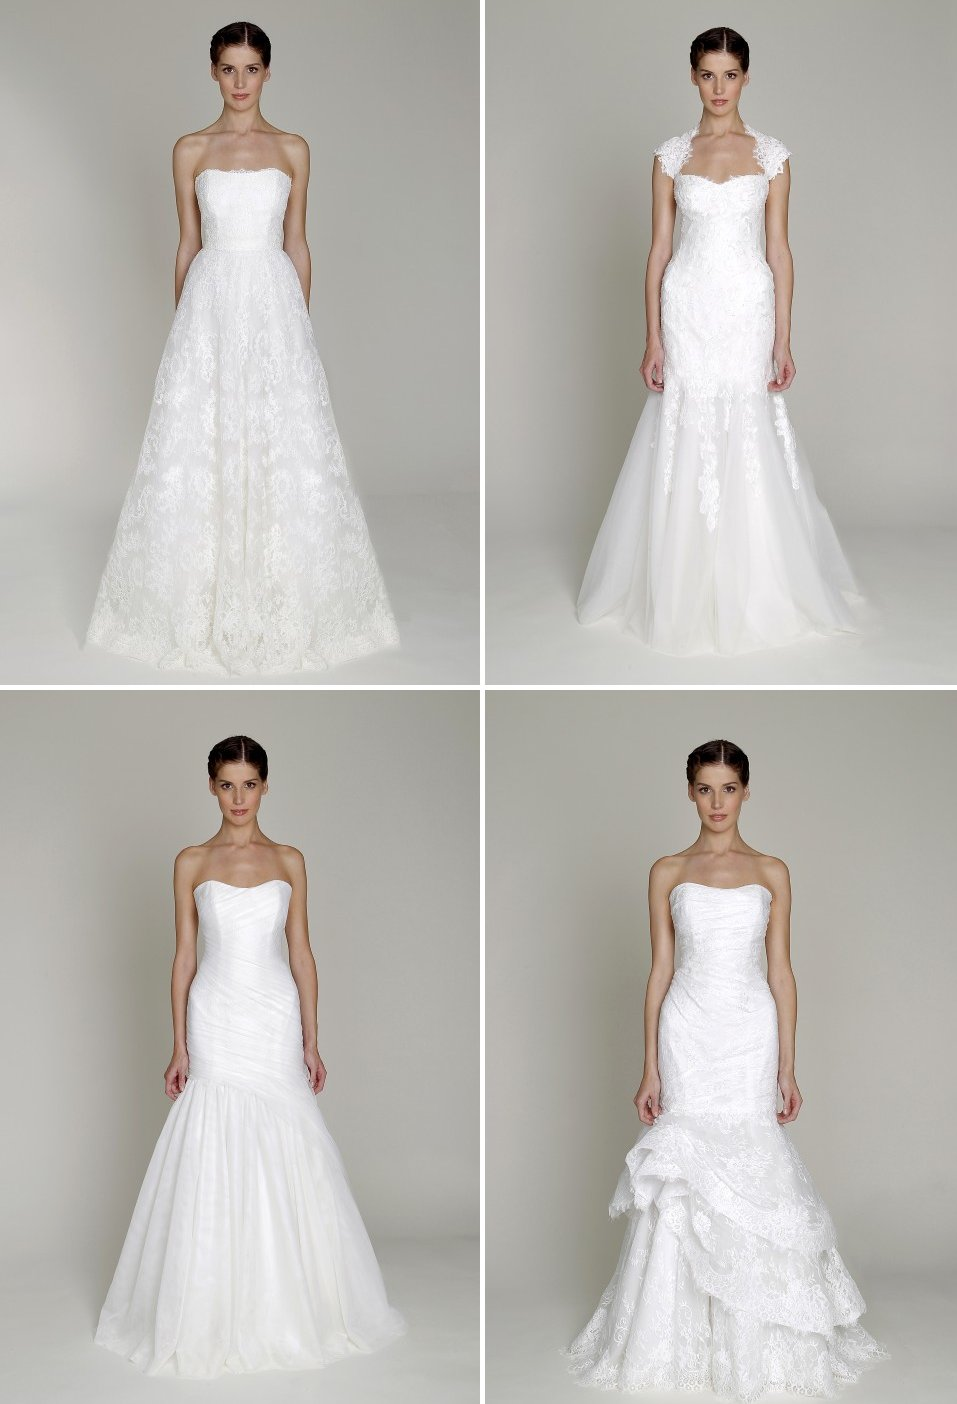 Affordable-designer-bridal-gowns-bliss-by-monique-lhuillier-wedding-dress-2.full